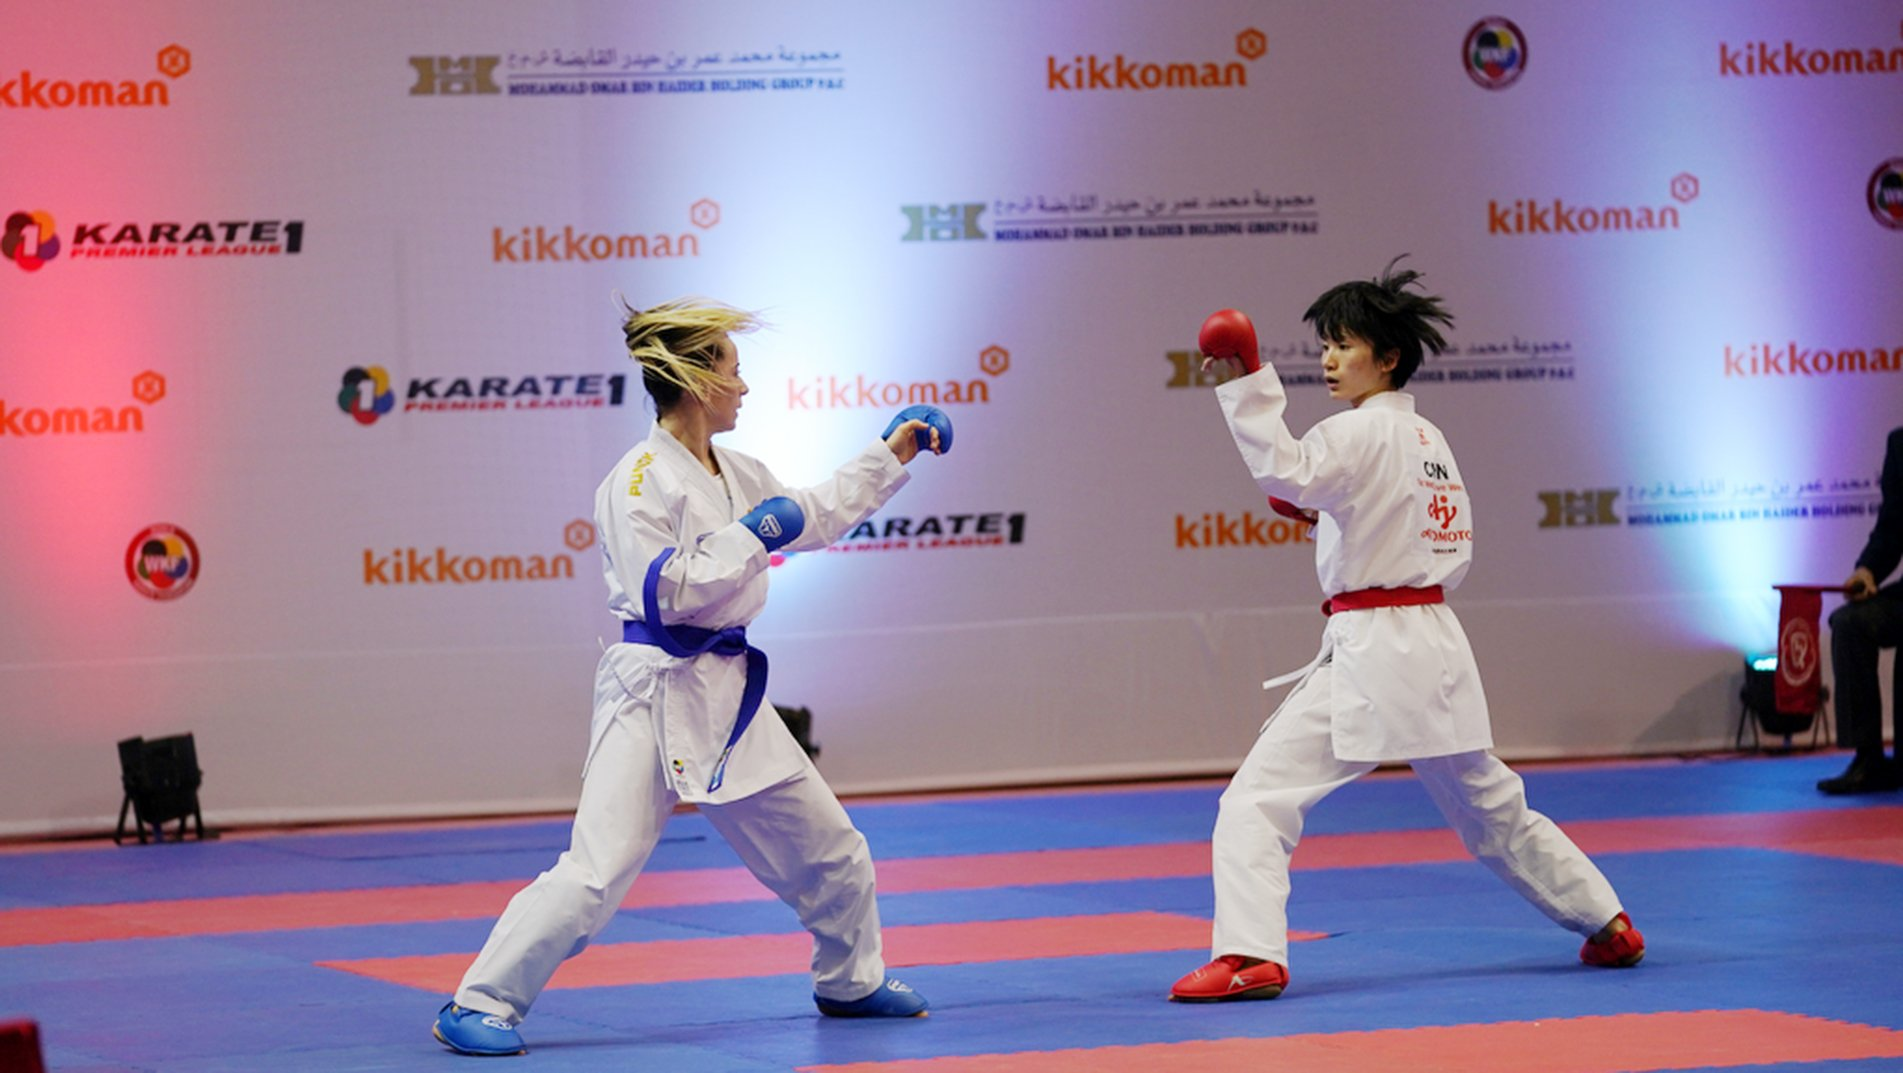 Grand Winners lead way to medals in day 1 of Karate 1-Premier League Dubai